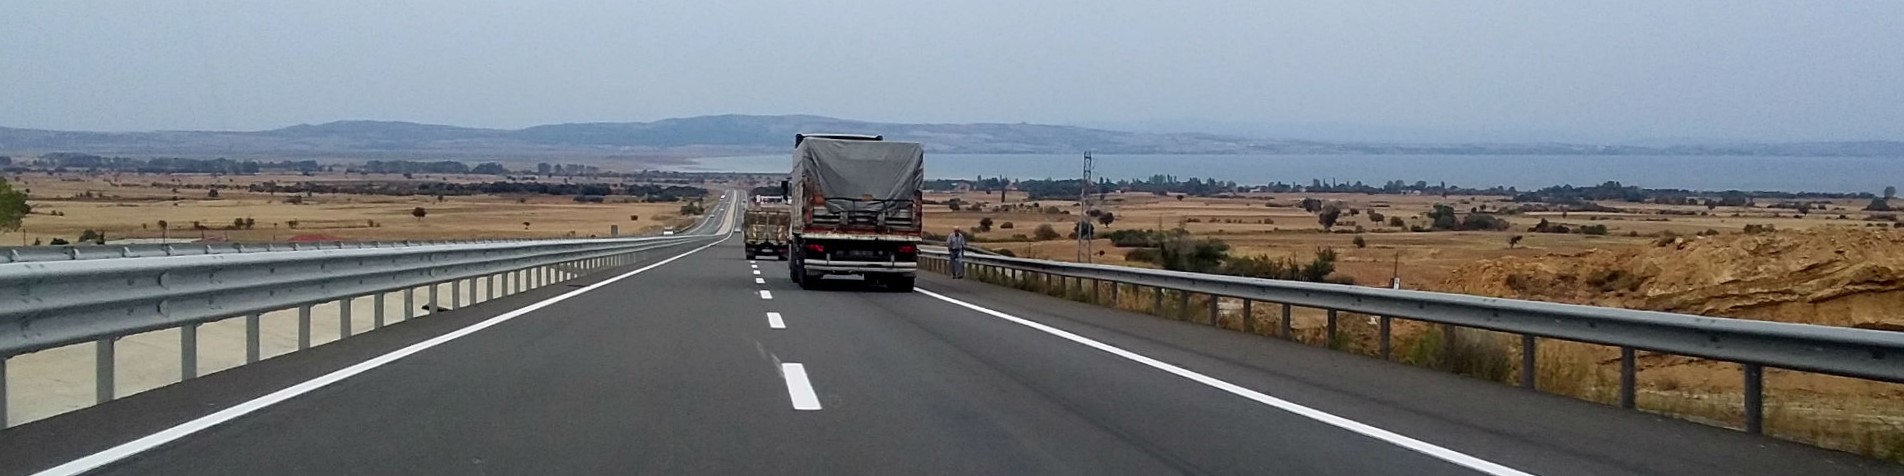 Heading the Gallipoli Peninsula, Tekirdağ Province